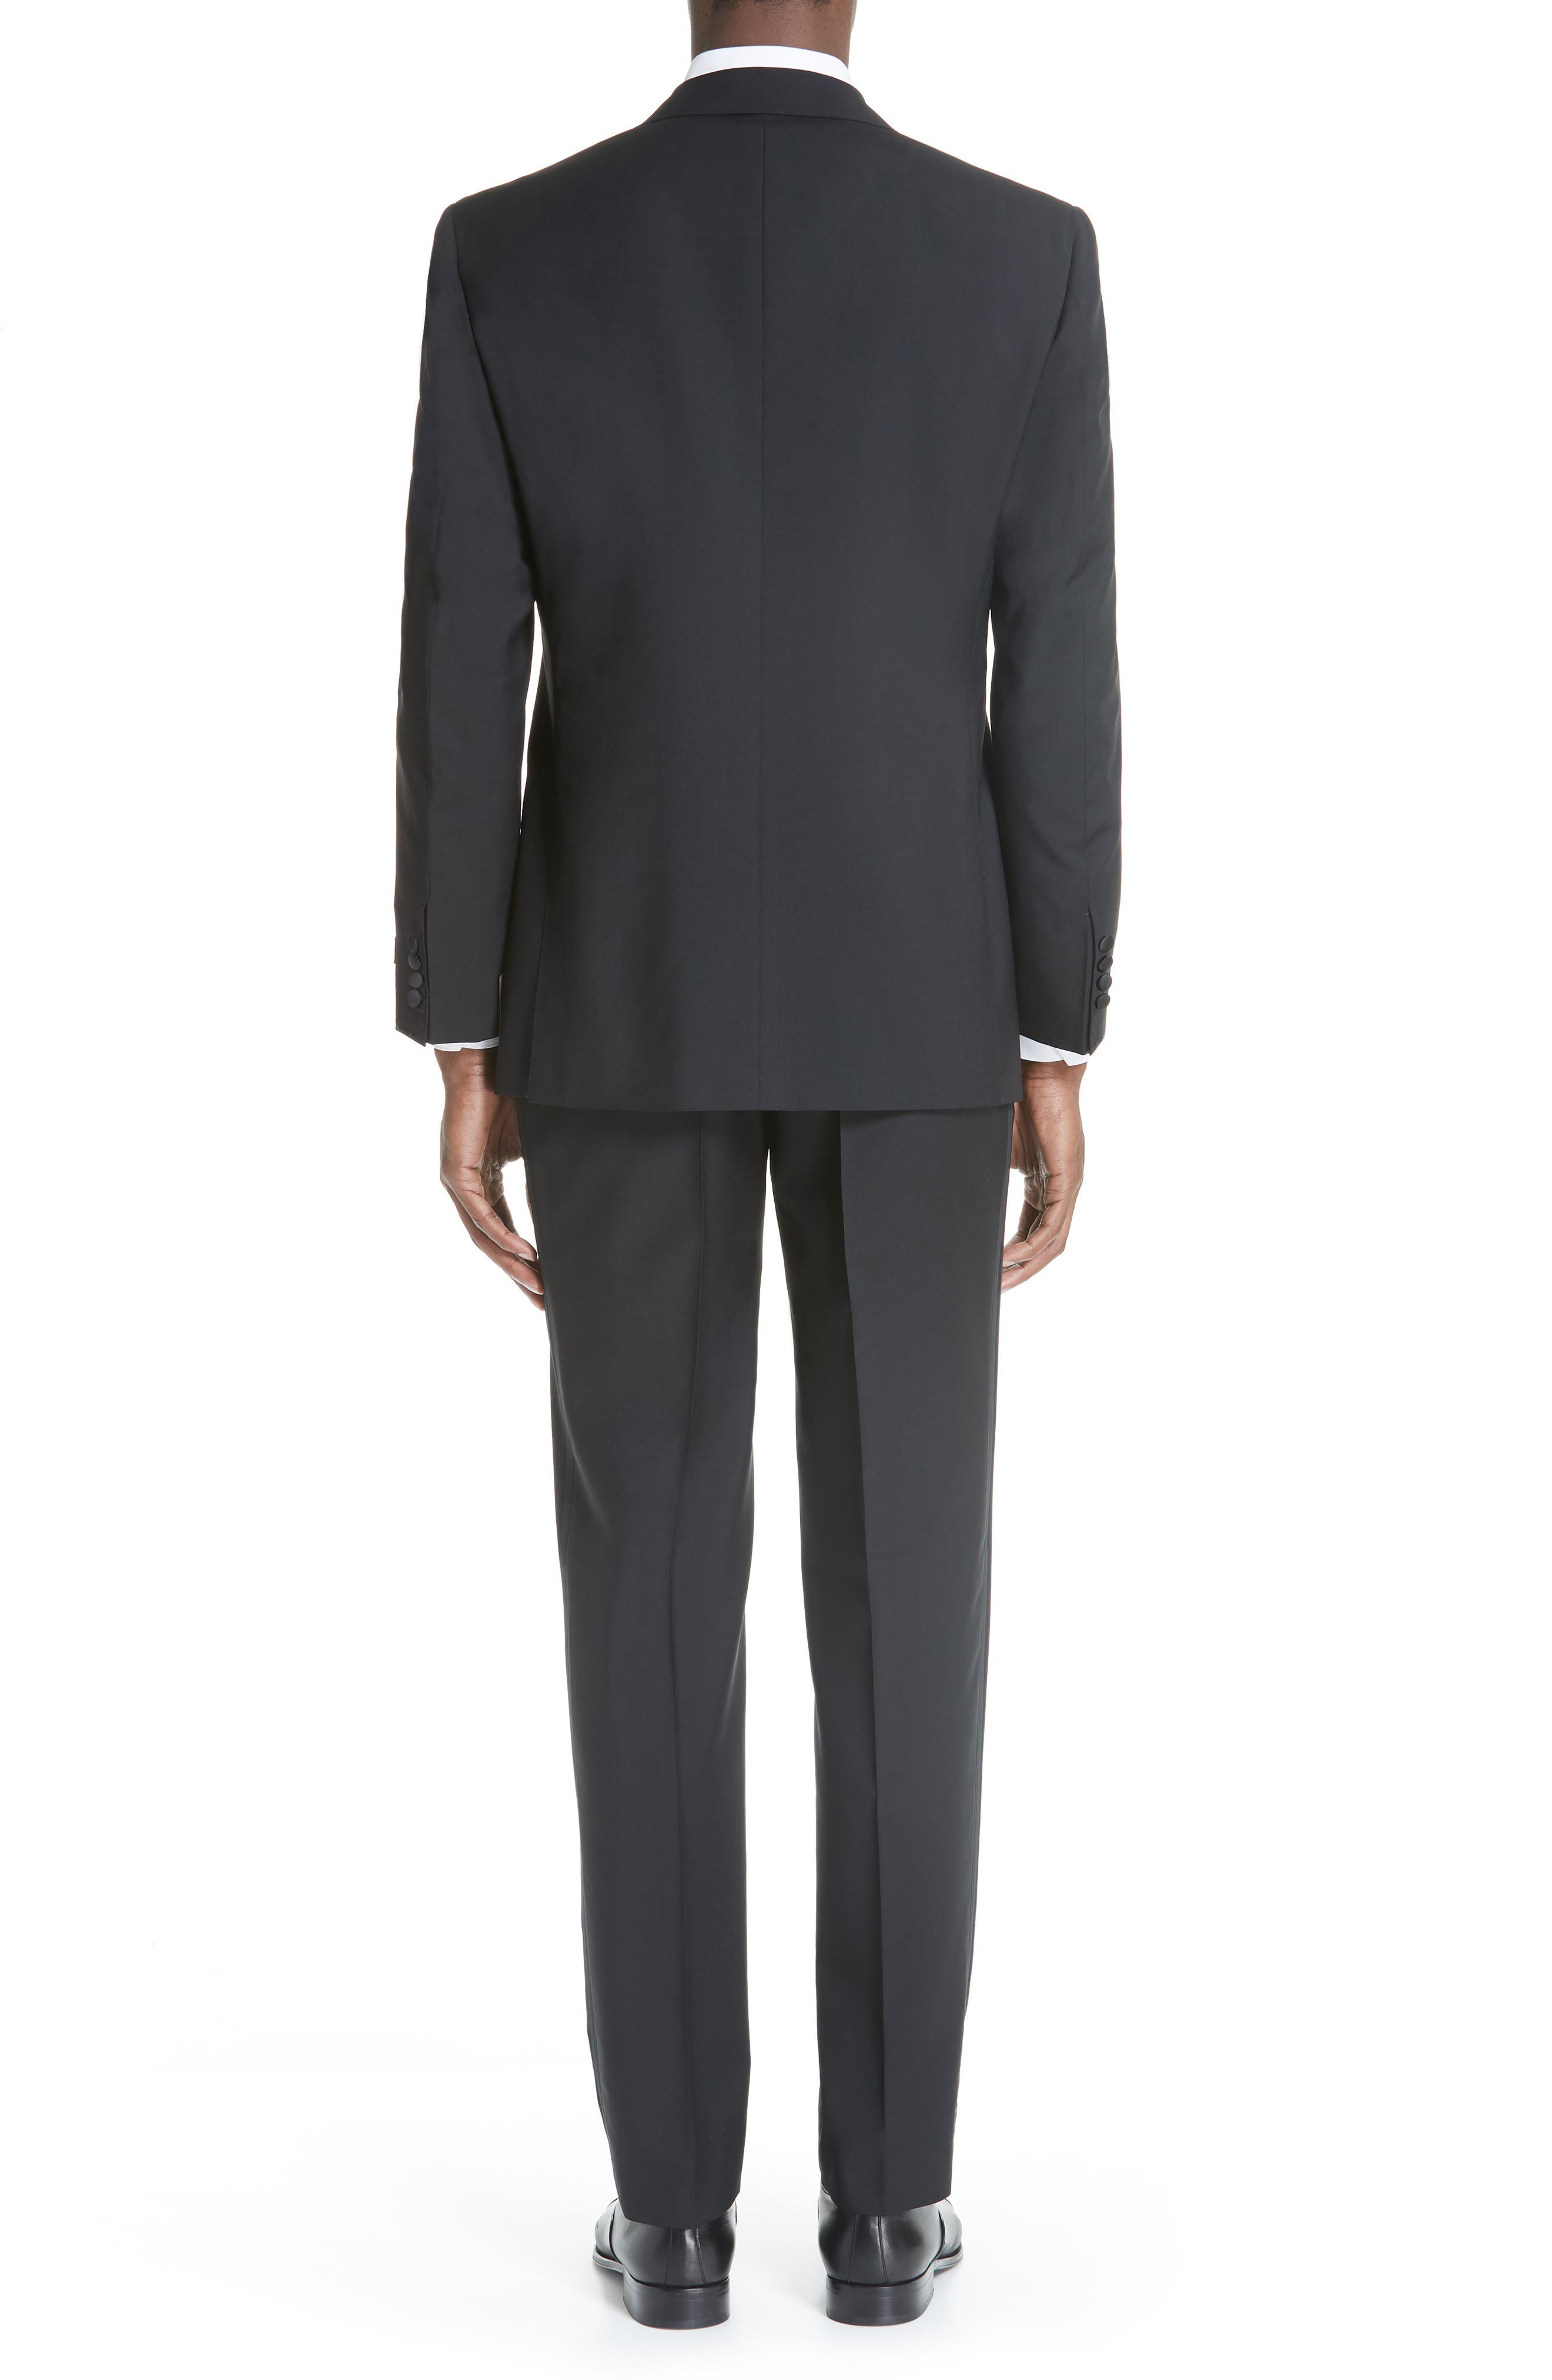 CANALI, 13000 Classic Fit Wool & Mohair Tuxedo, Alternate thumbnail 2, color, BLACK